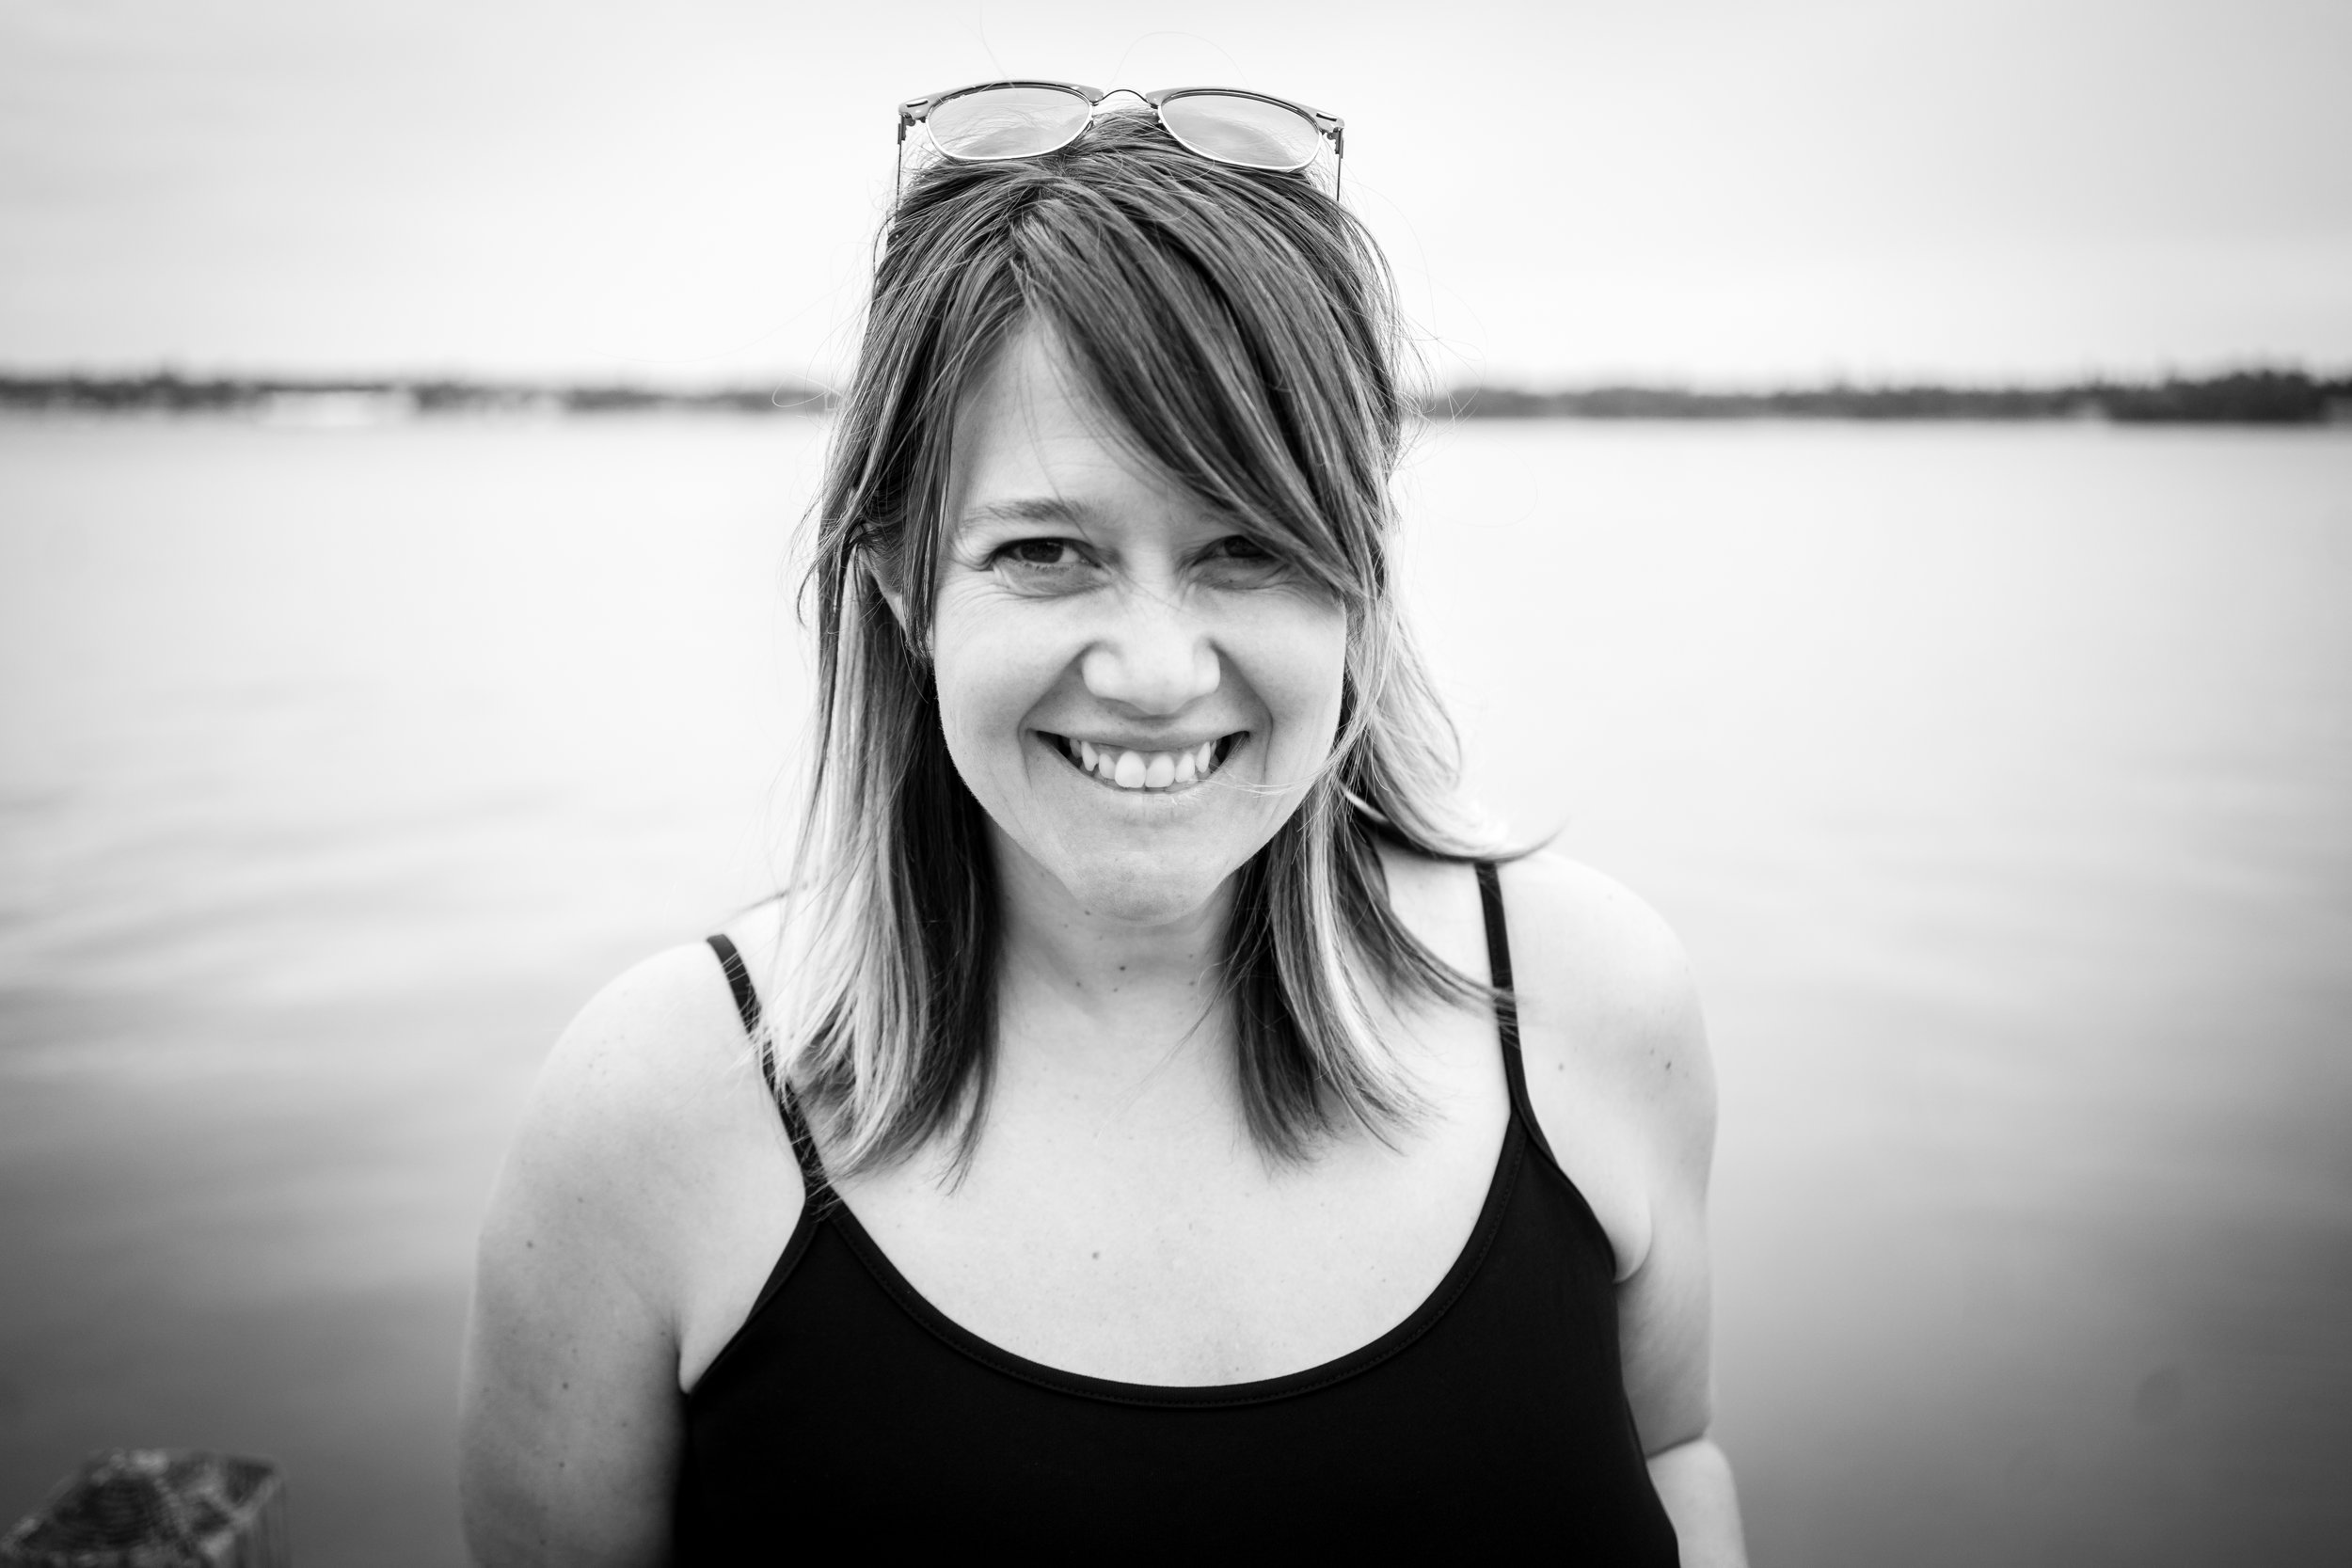 Photographer, Andrejka Hirsch on The Unplugged Creative Podcast with Arielle Zadok